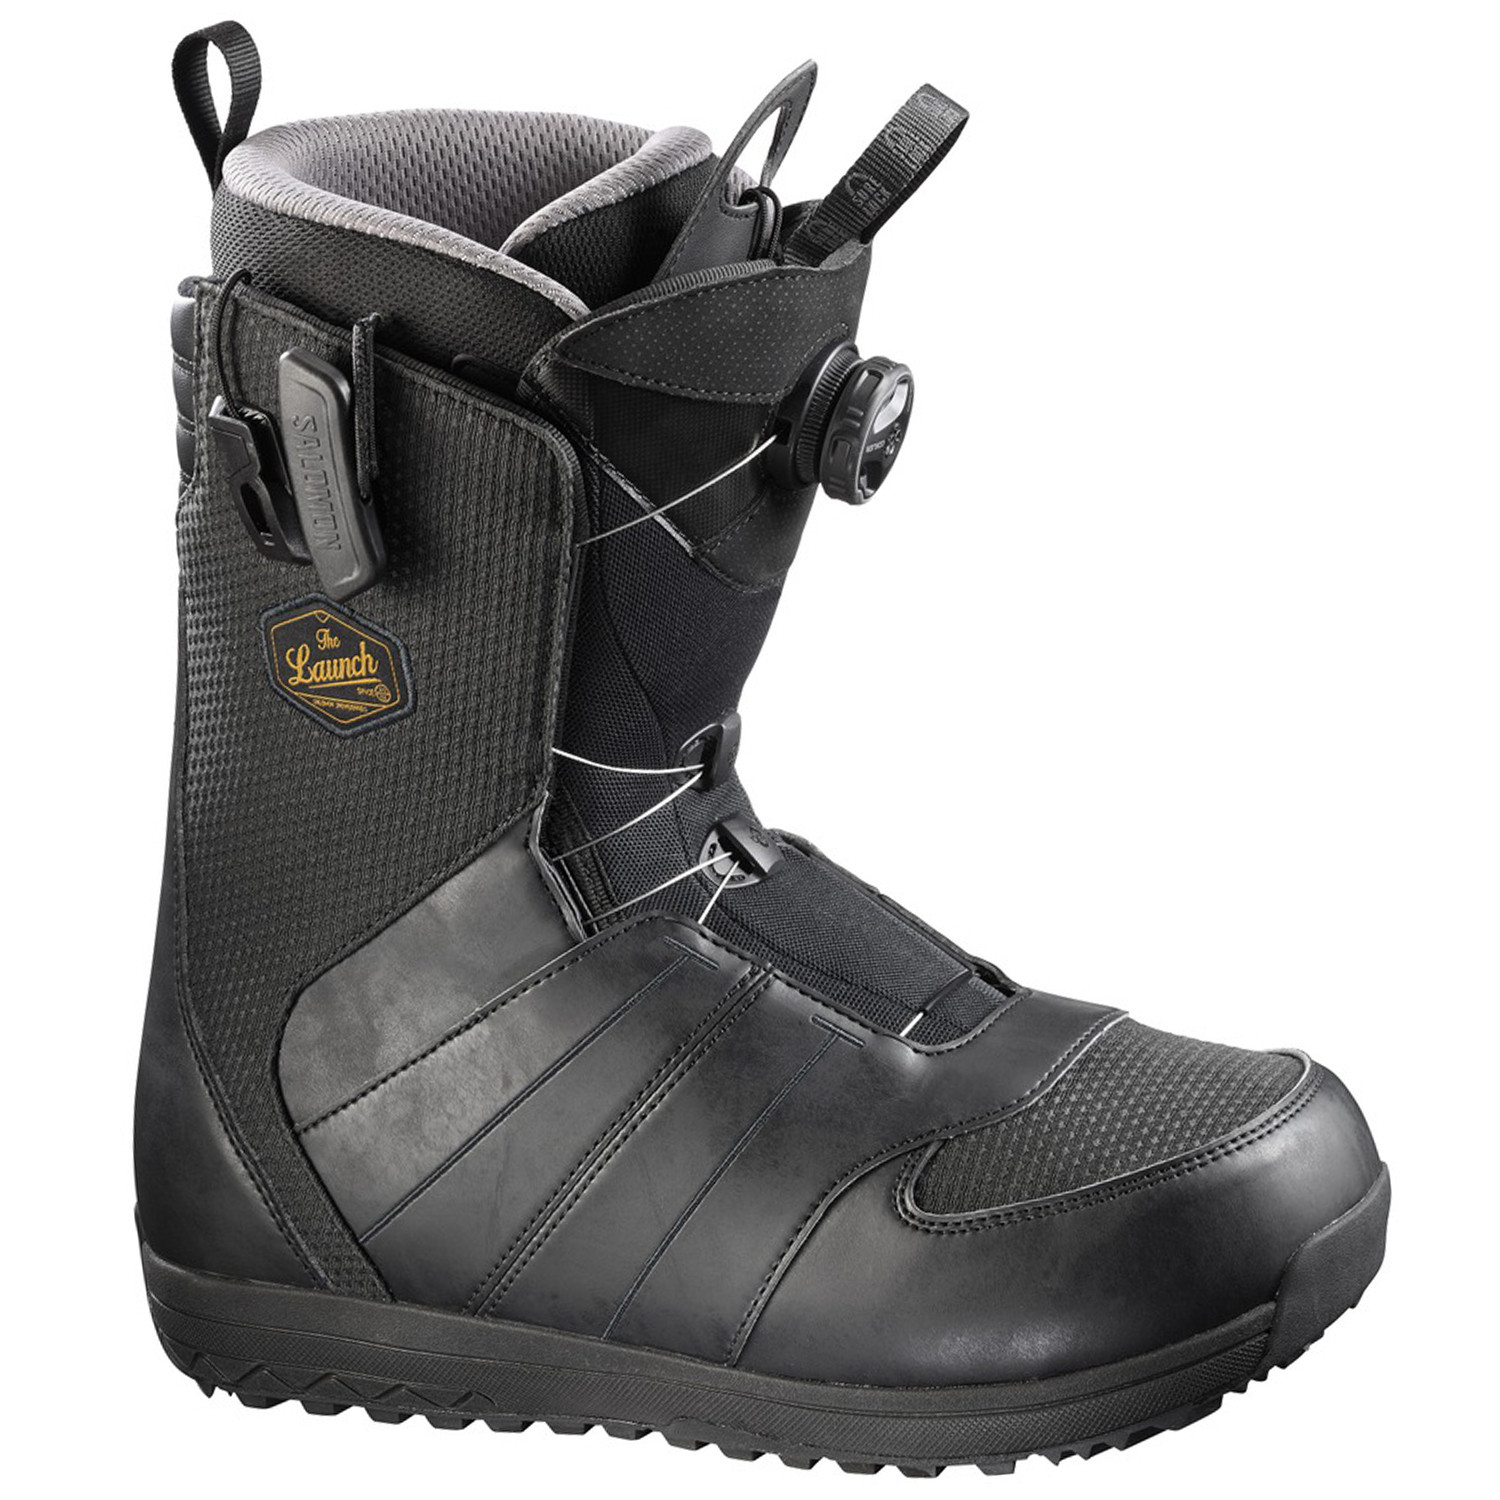 boots snowboard homme pas cher chaussures snowboard boots de snowboard burton concord boa noir homme. Black Bedroom Furniture Sets. Home Design Ideas